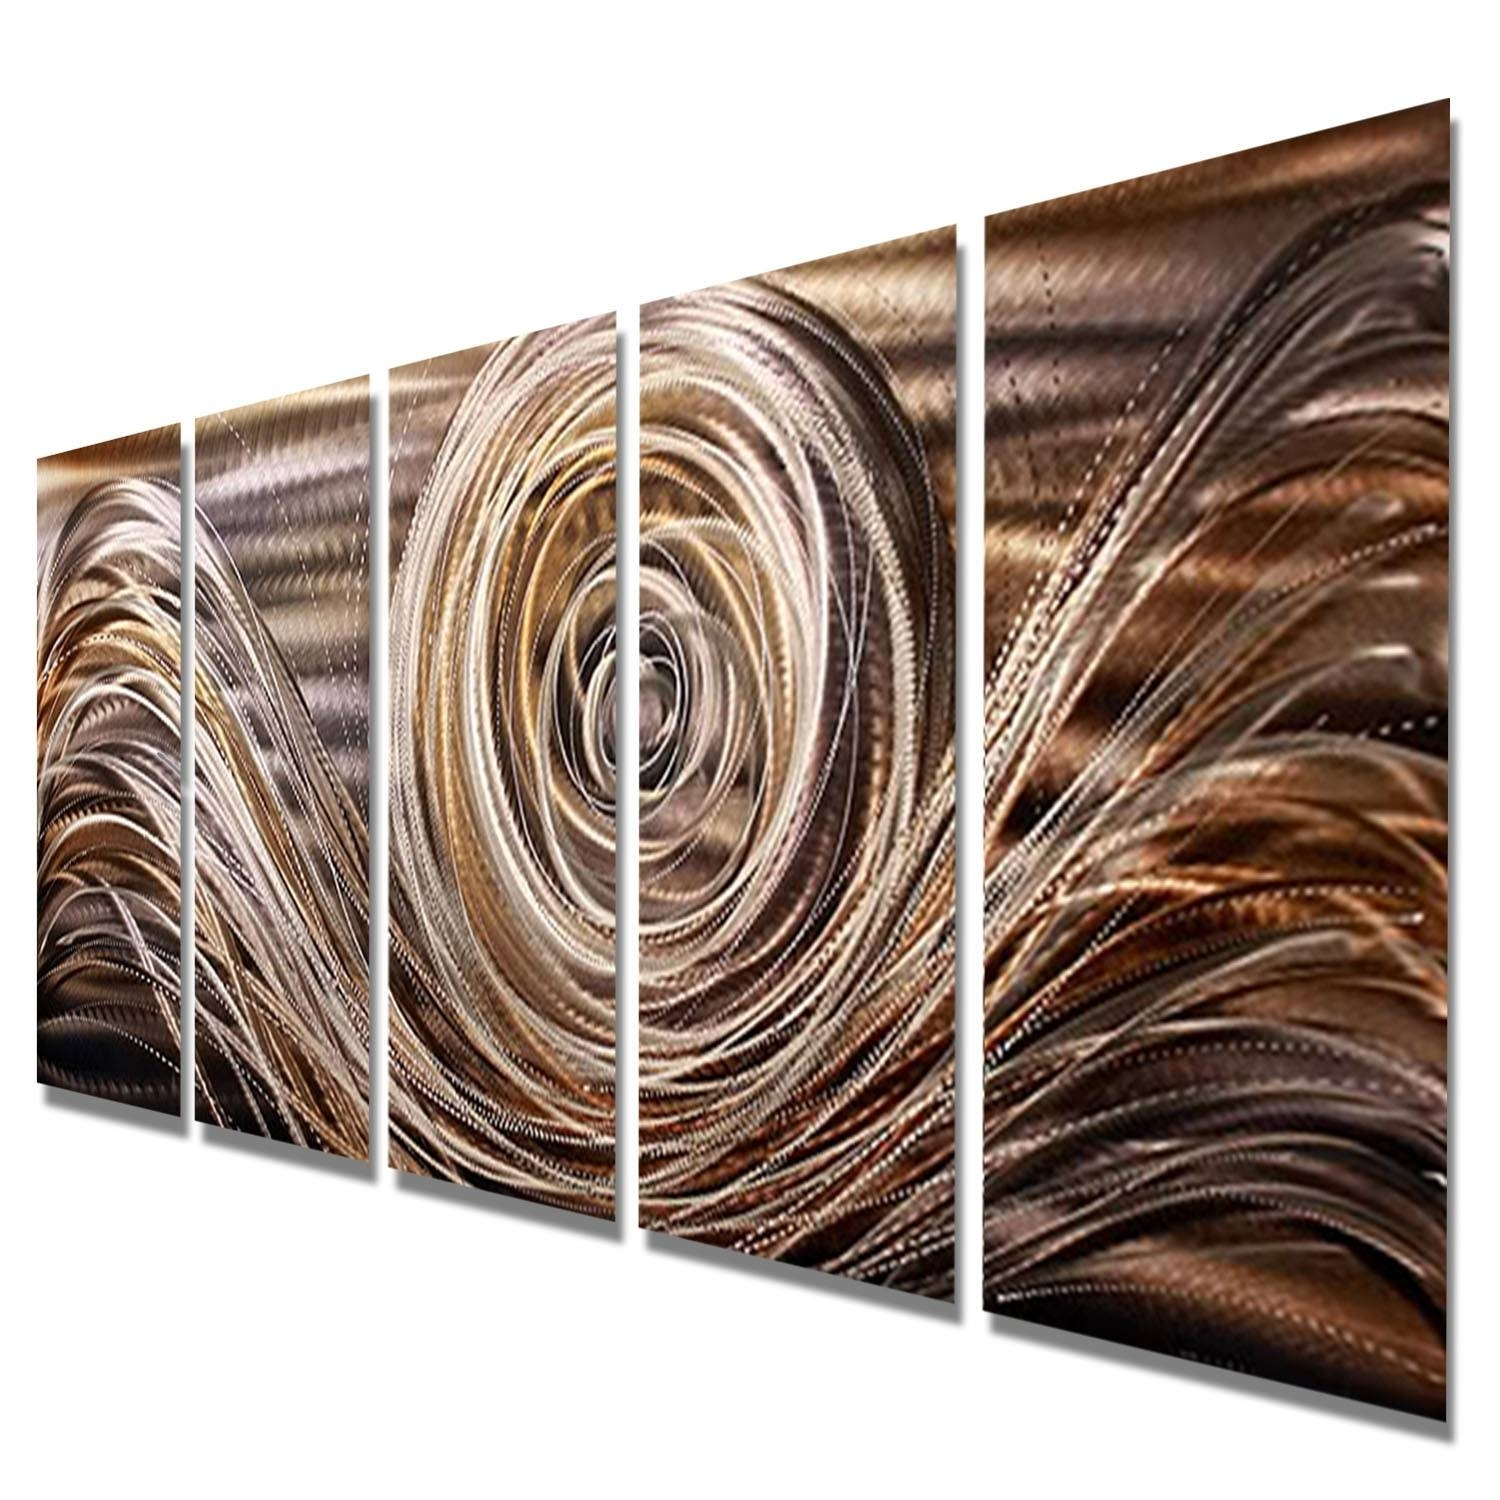 The Best Swirl Metal Wall Art Pertaining To Best And Newest Abstract Angkor Swirl Metal Wall Art (View 13 of 20)